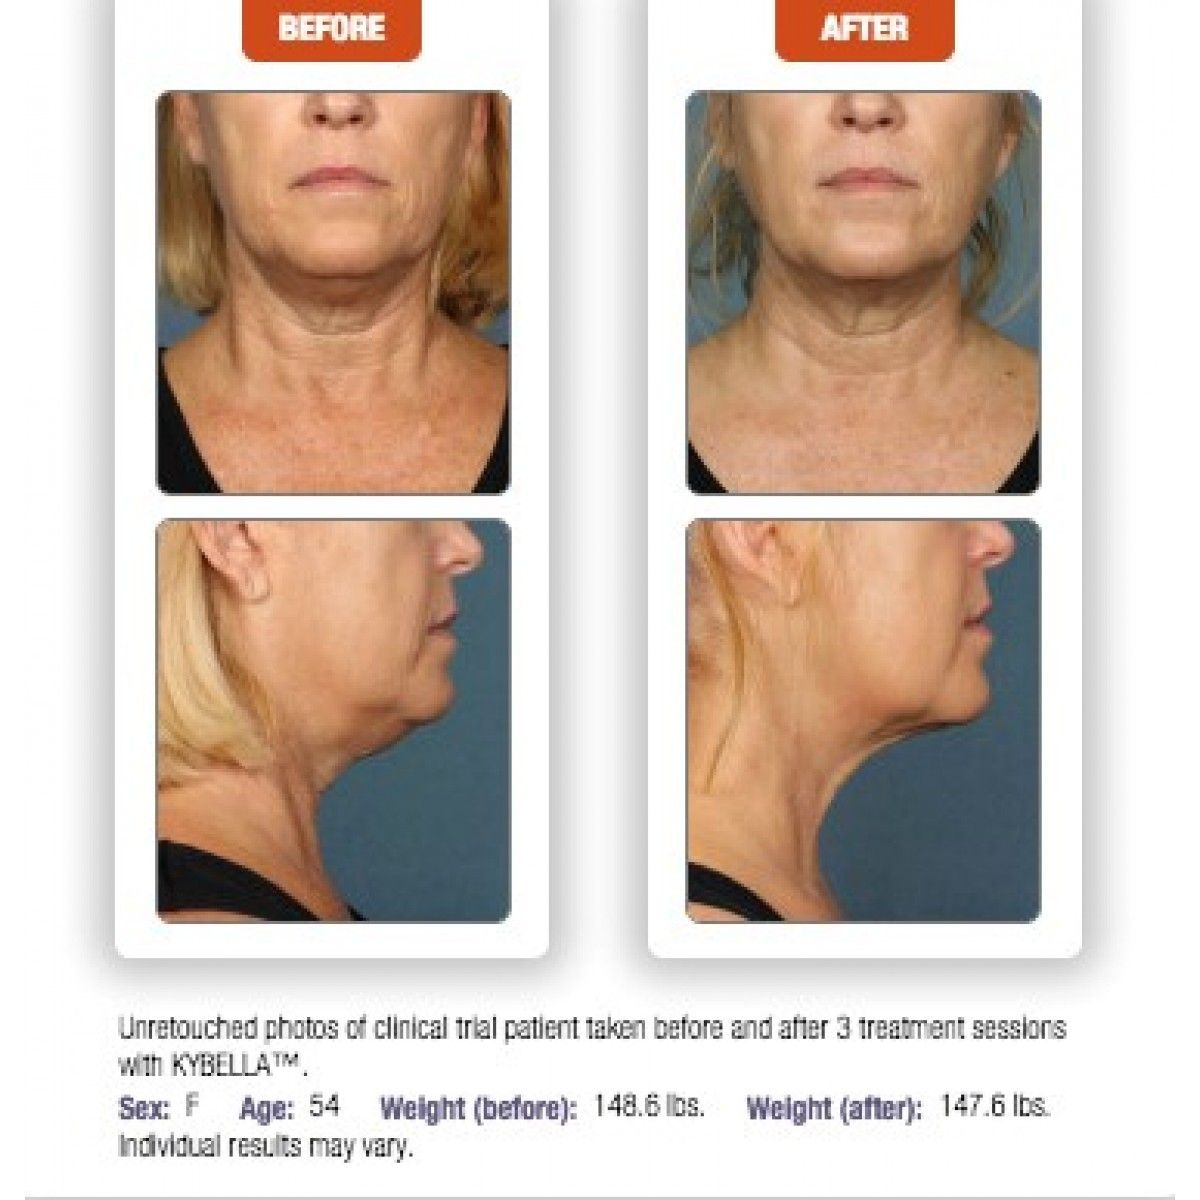 Kybella Before And After Pics Tattoo Removal Kybella Plastic Surgery